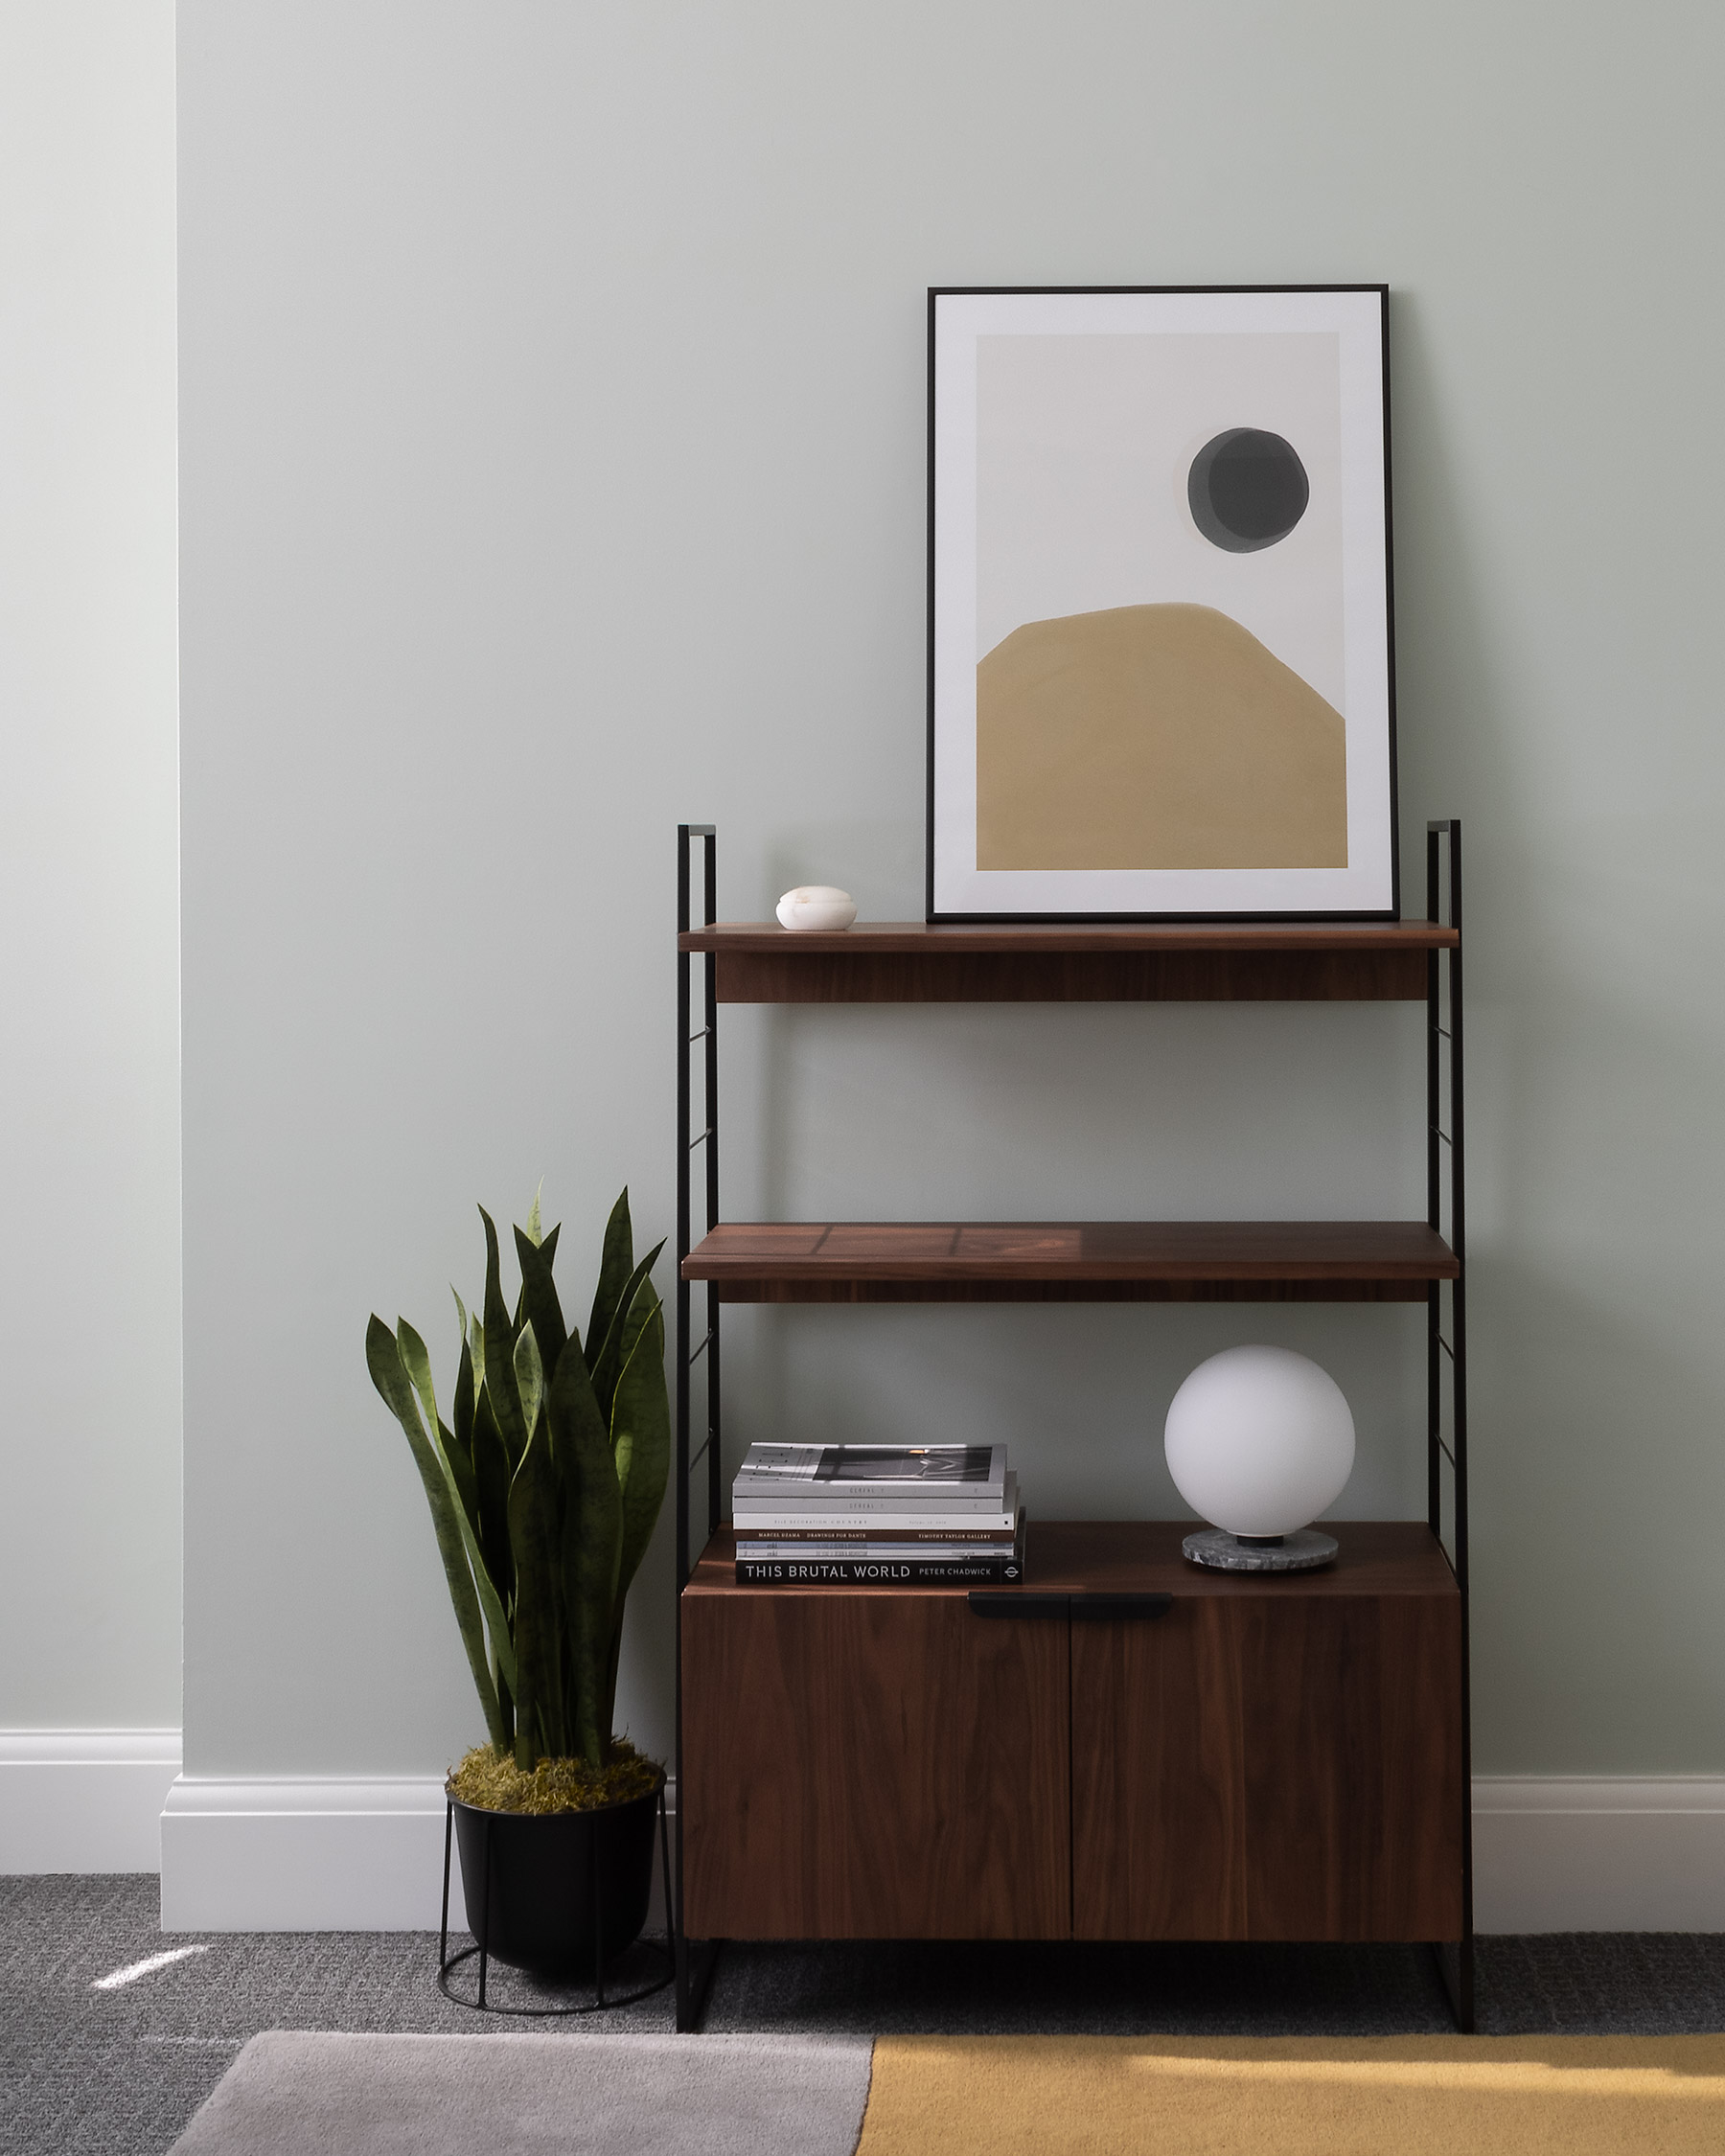 Interior with mid-century walnut cabinet, sansevieria plant, abstract art and geometric rug